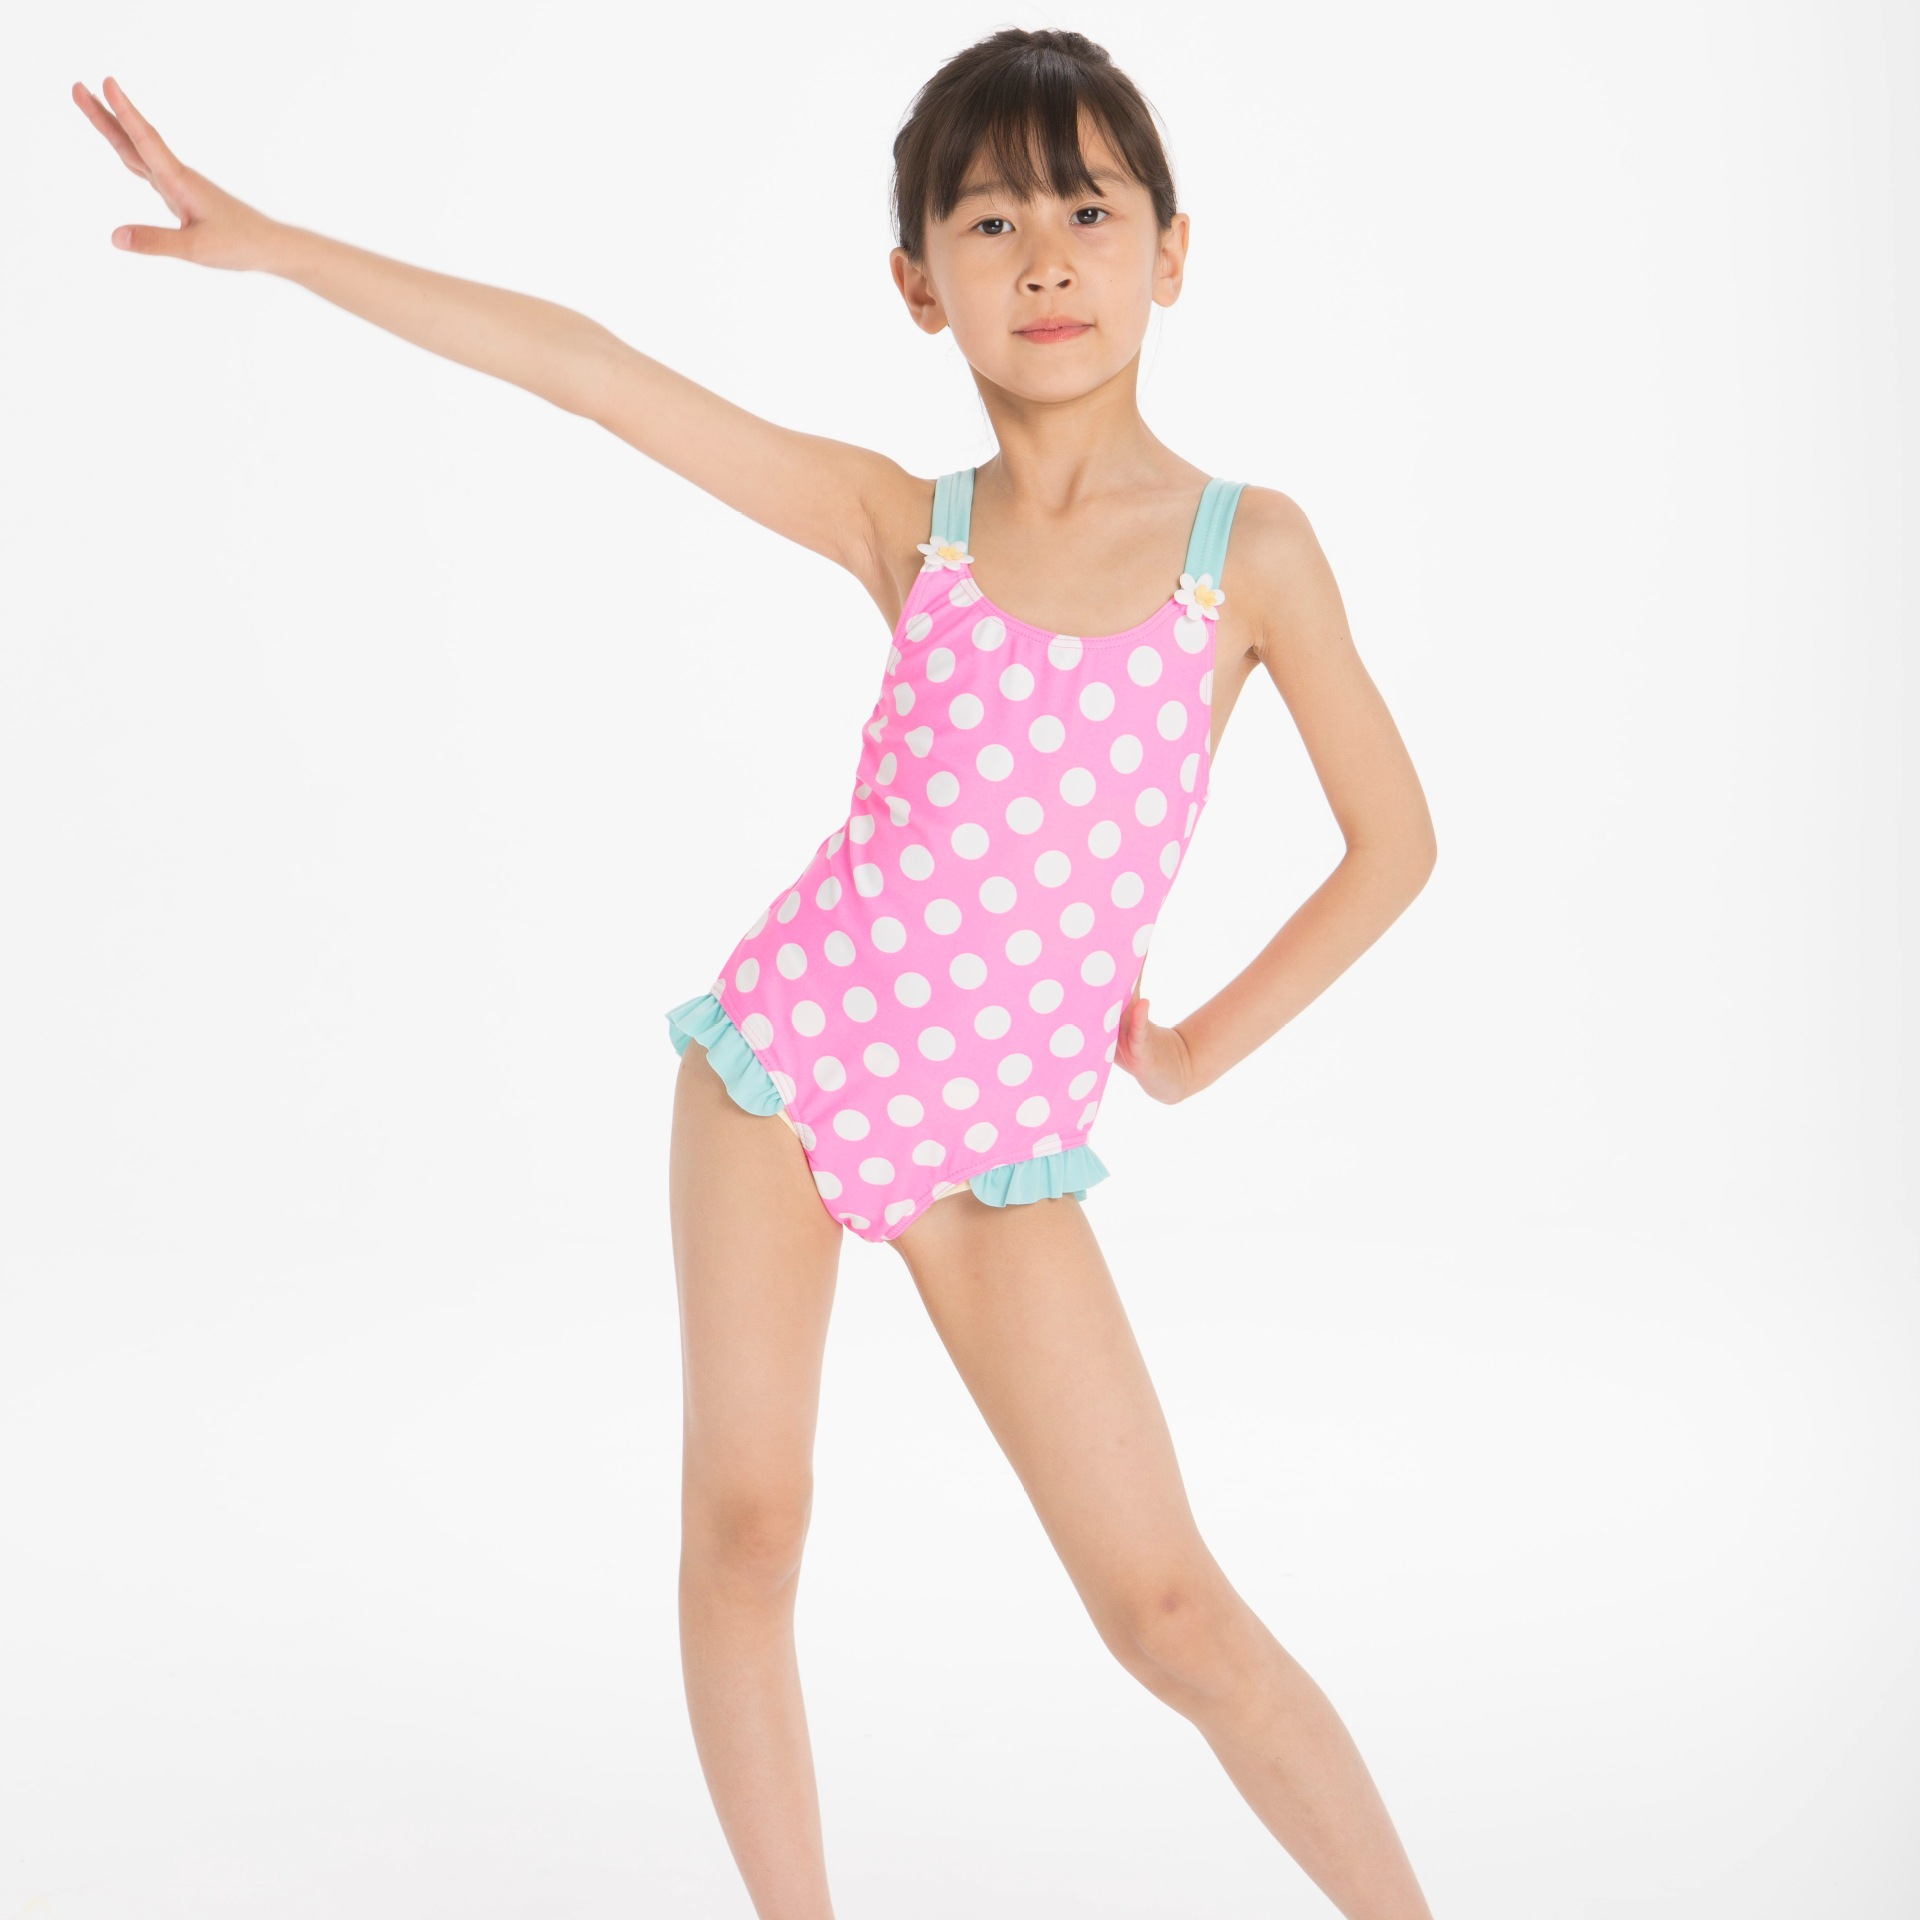 Bright Pink Dotted Girls One-piece CHILDREN'S Swimwear Beach One-piece Swimsuit For Children A Generation Of Fat